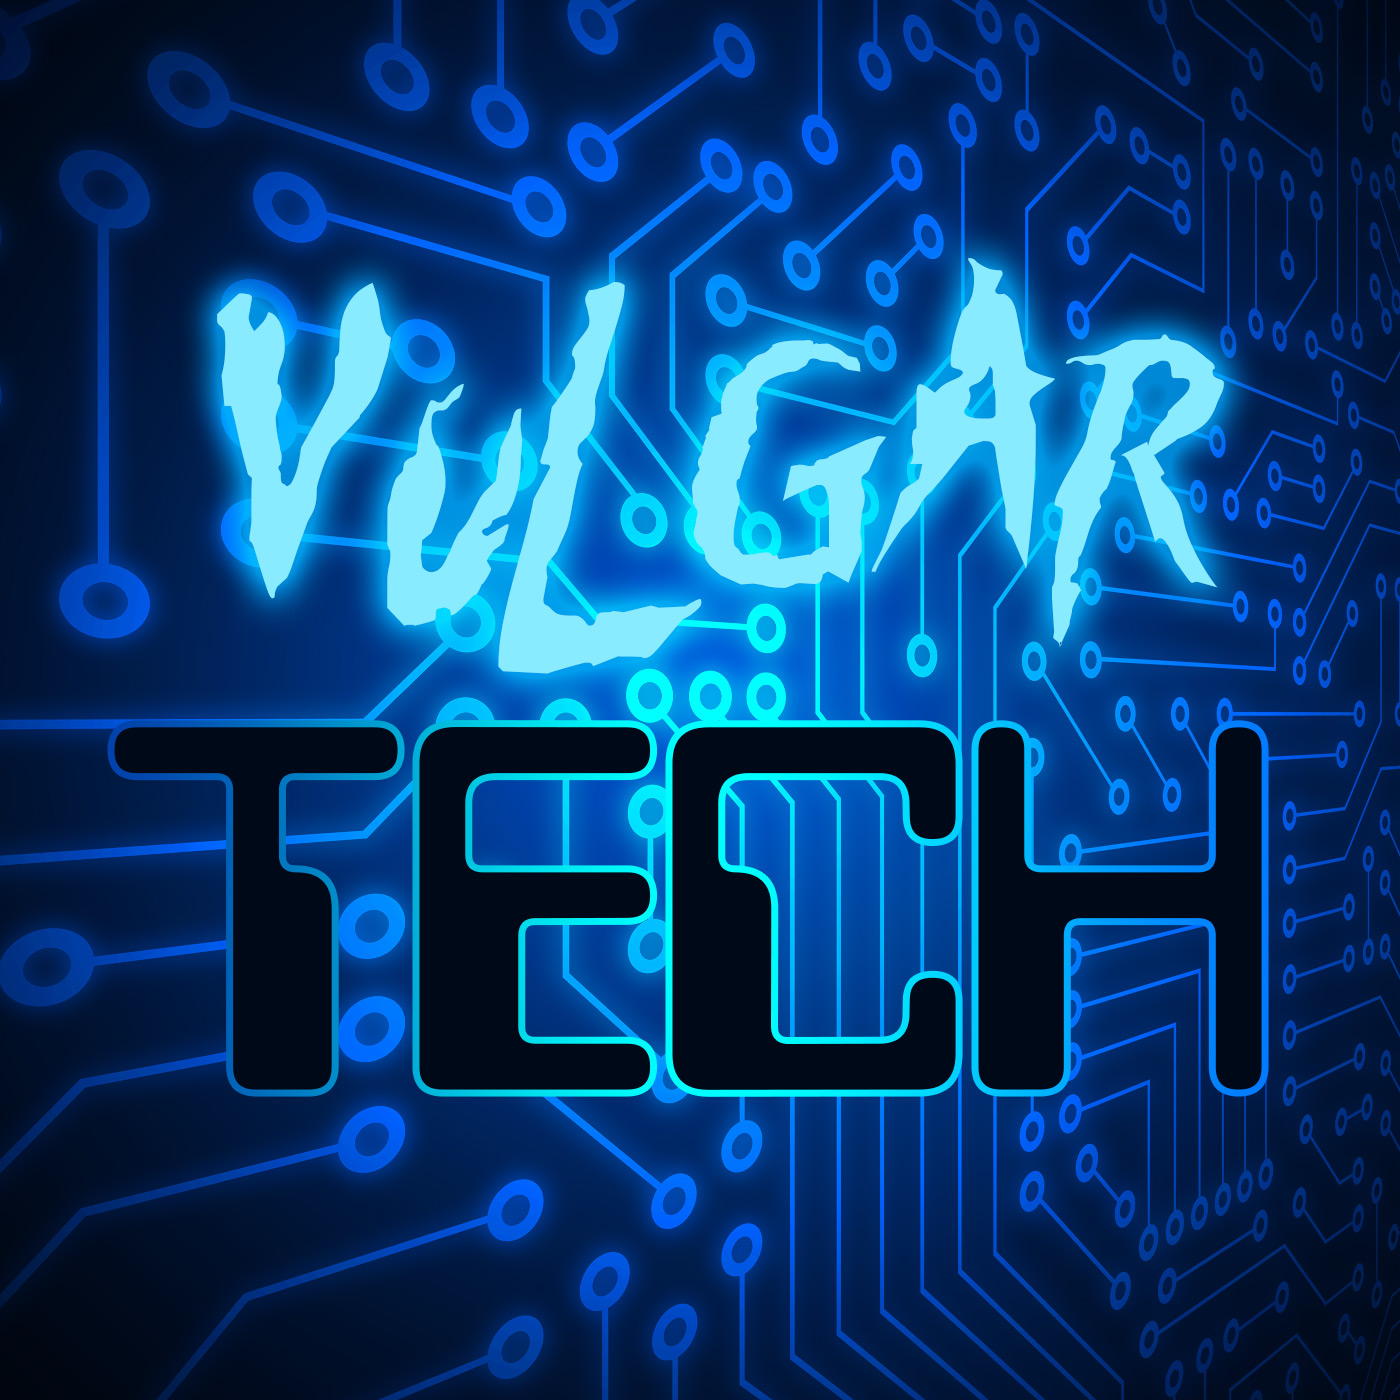 Vulgar Tech 015 : AI Style Assistants, Robot Voices, Robot Sex Toys, Augmented Reality, and Lab Grown Meat